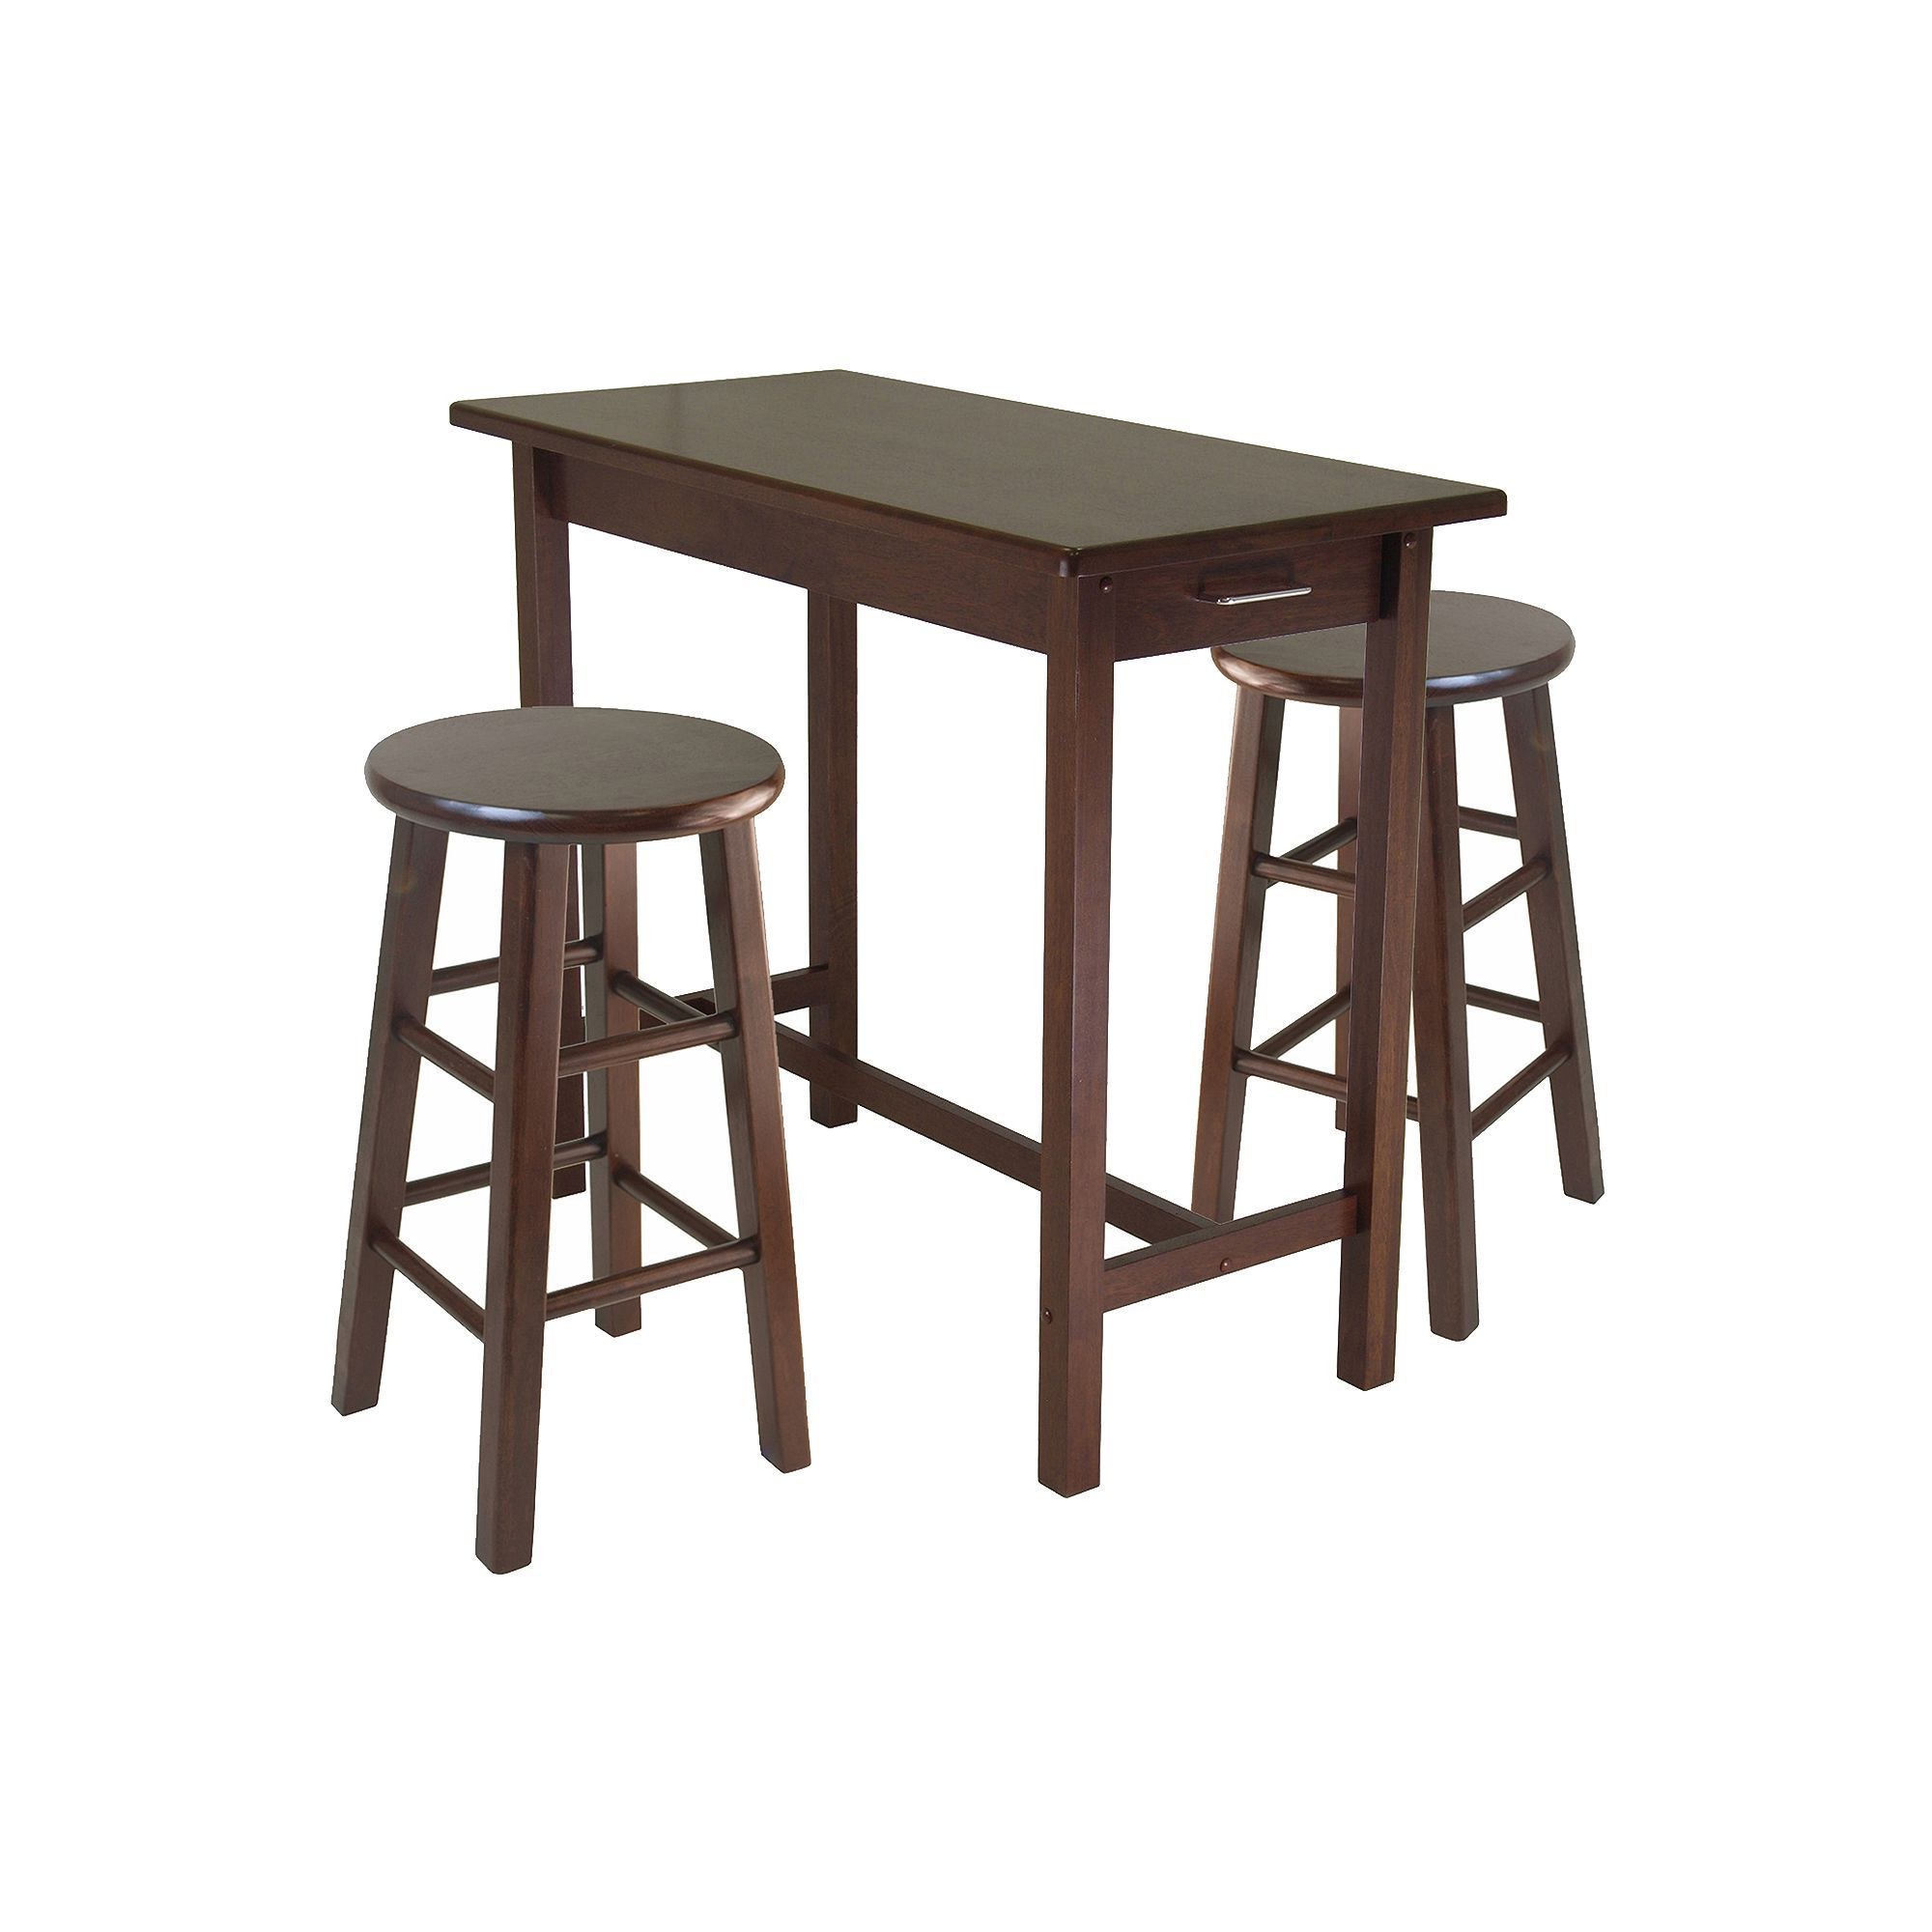 Counter Pertaining To Well Known Winsome 3 Piece Counter Height Dining Sets (View 23 of 25)